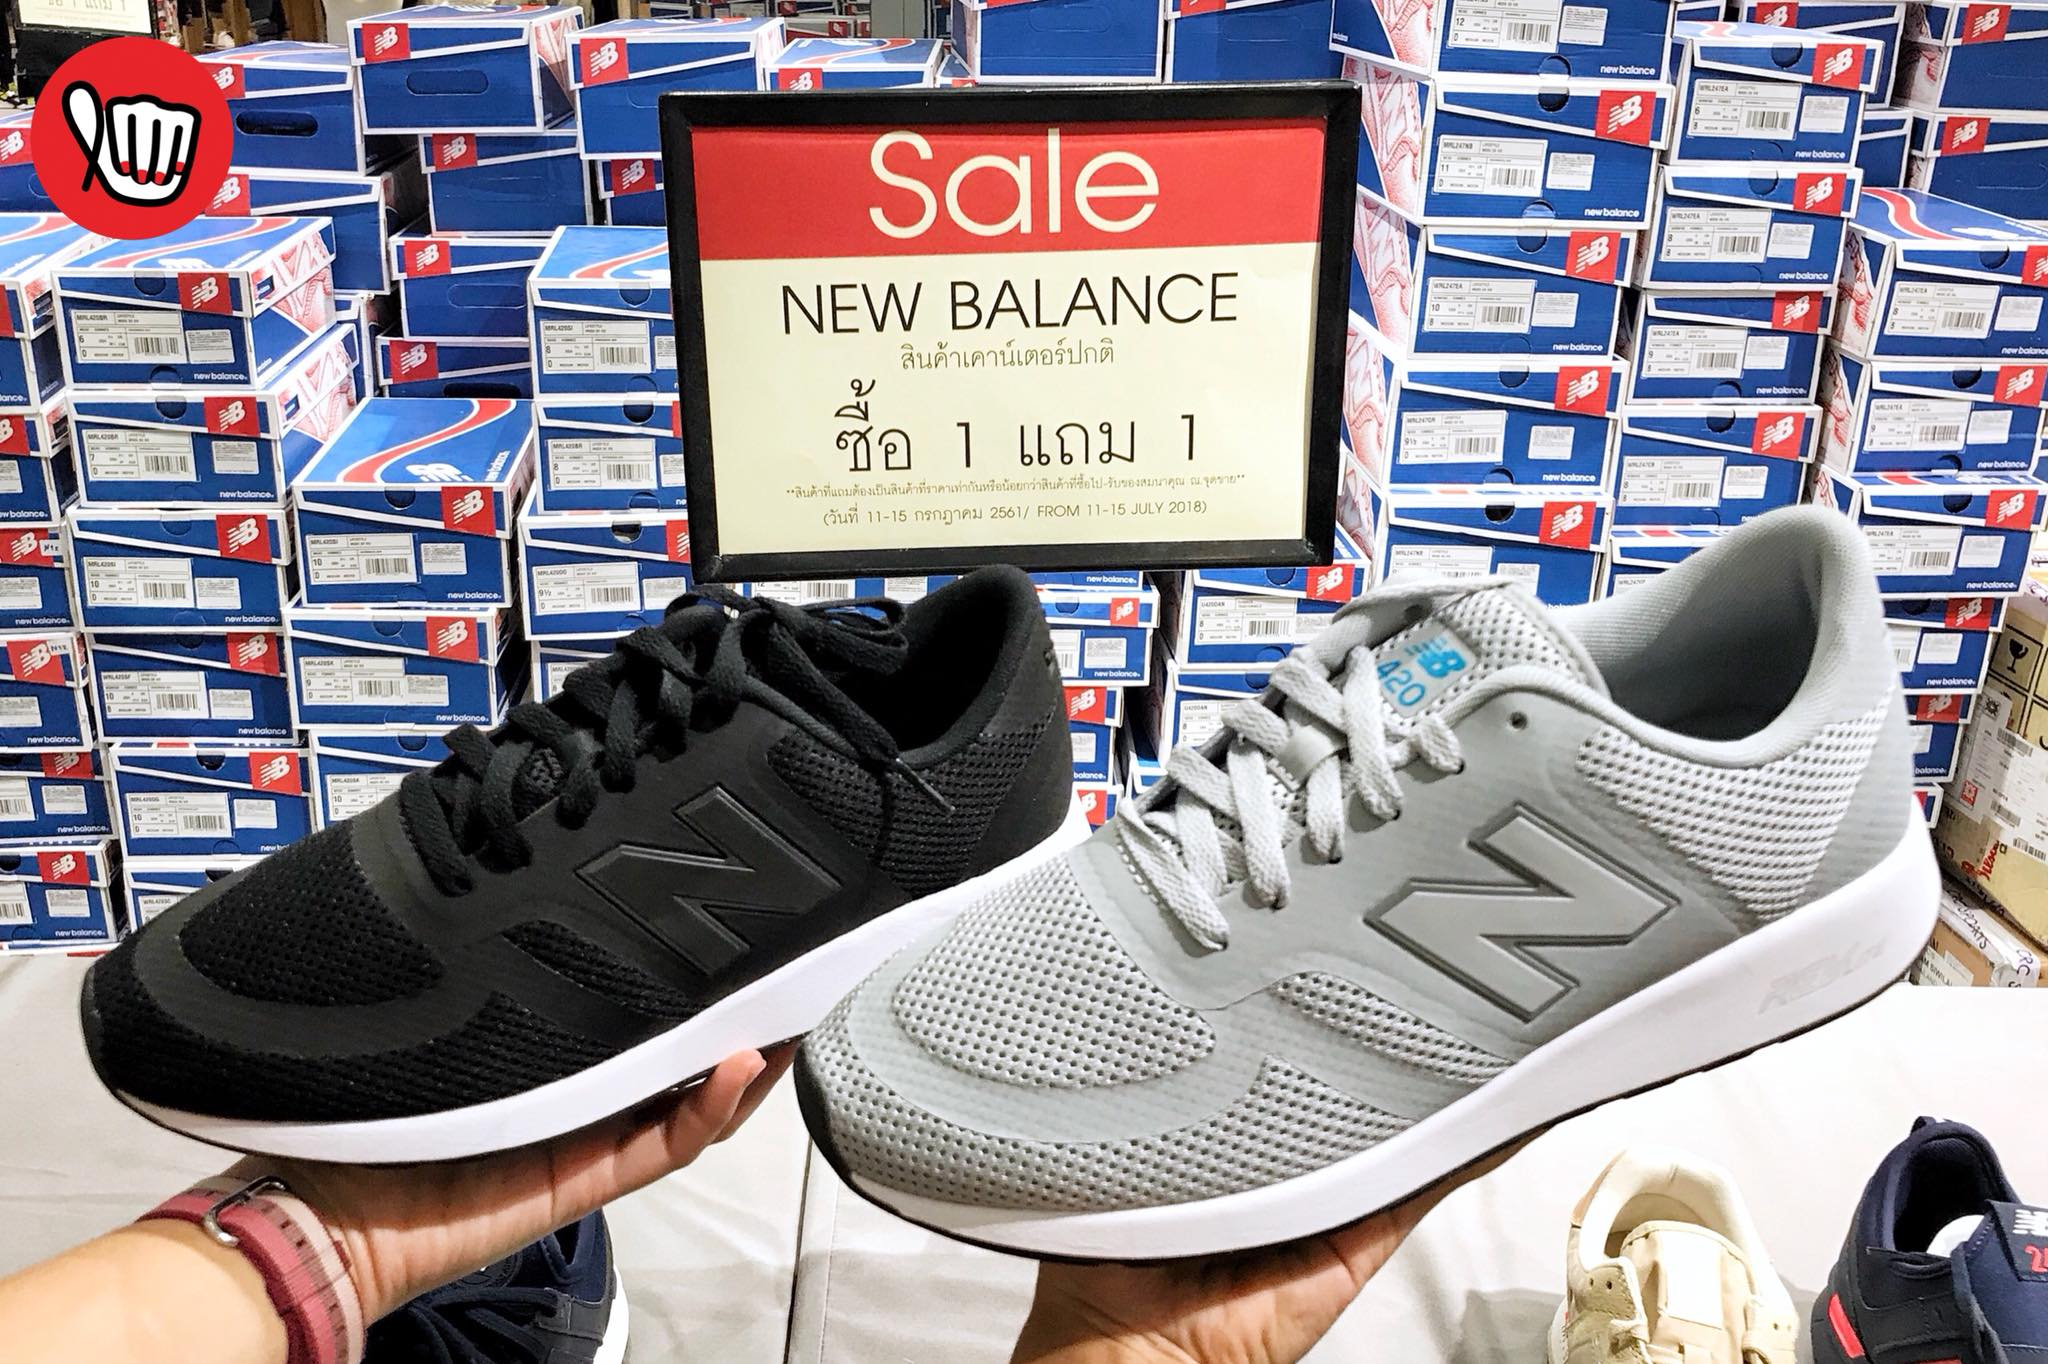 New Balance & SKECHERS 1 แถม 1